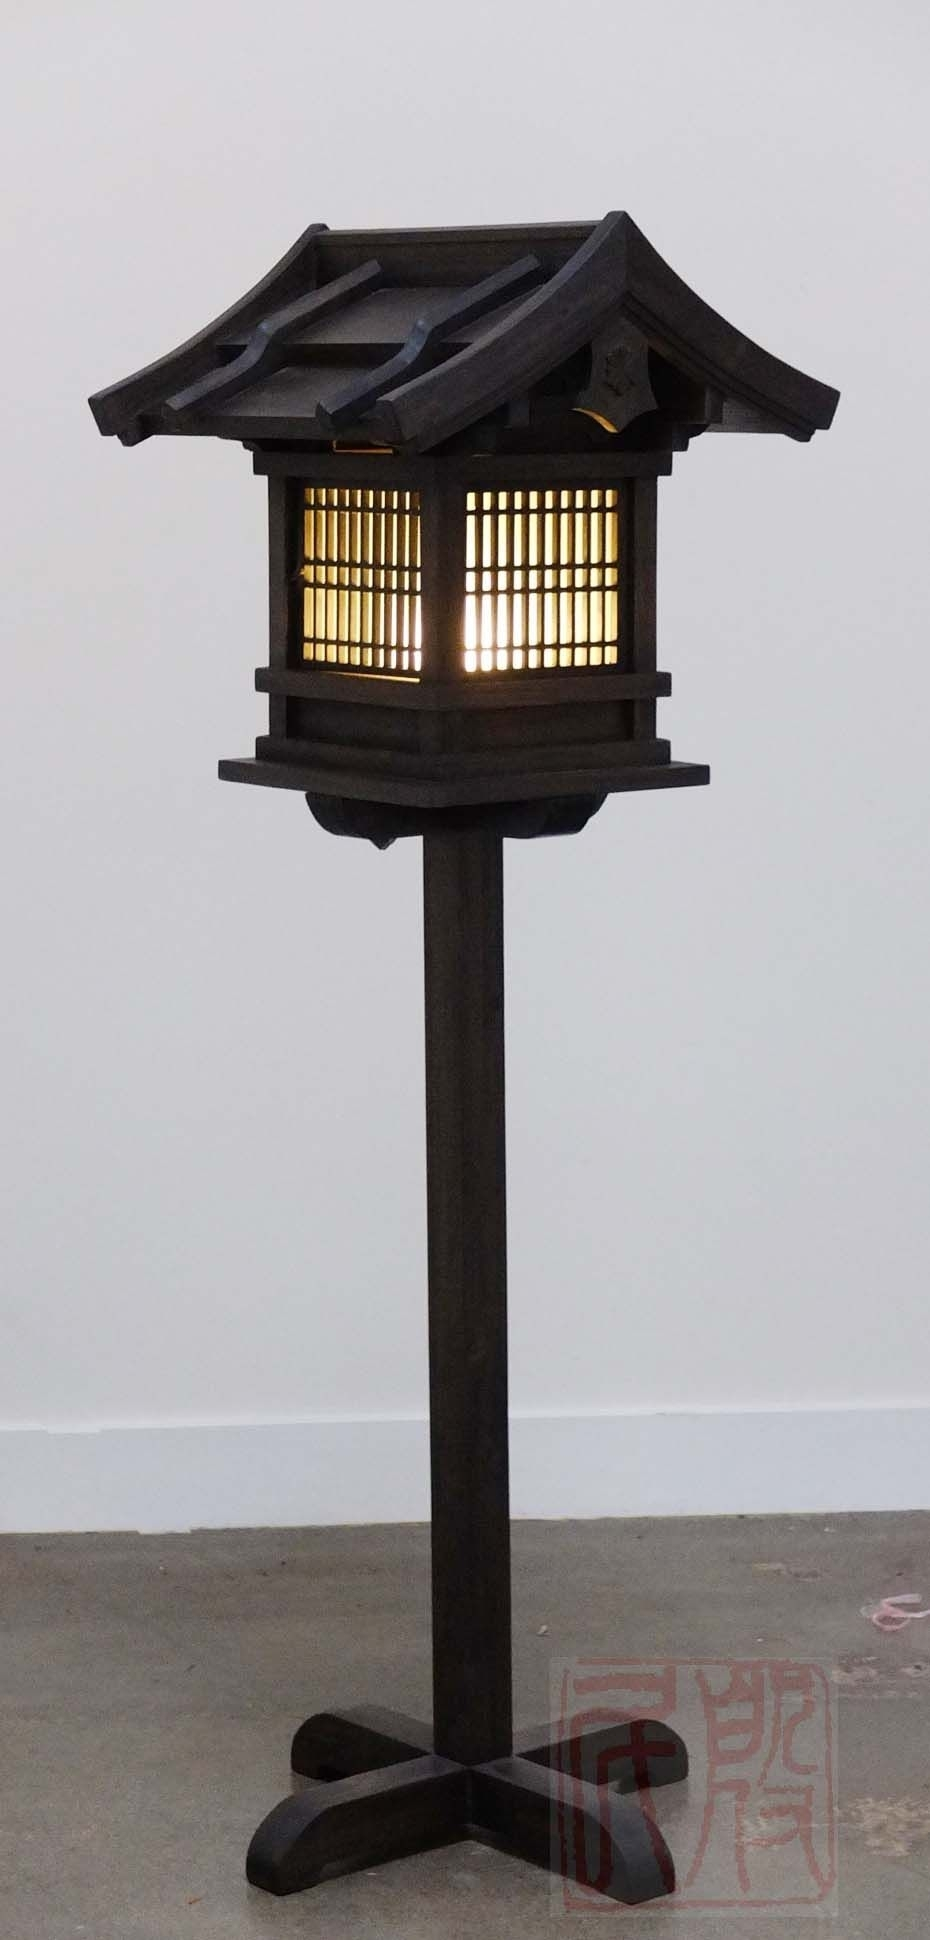 Japanese Wooden Lantern, Outdoor (Wl2) | Things To Wear | Pinterest within Outdoor Japanese Lanterns for Sale (Image 15 of 20)